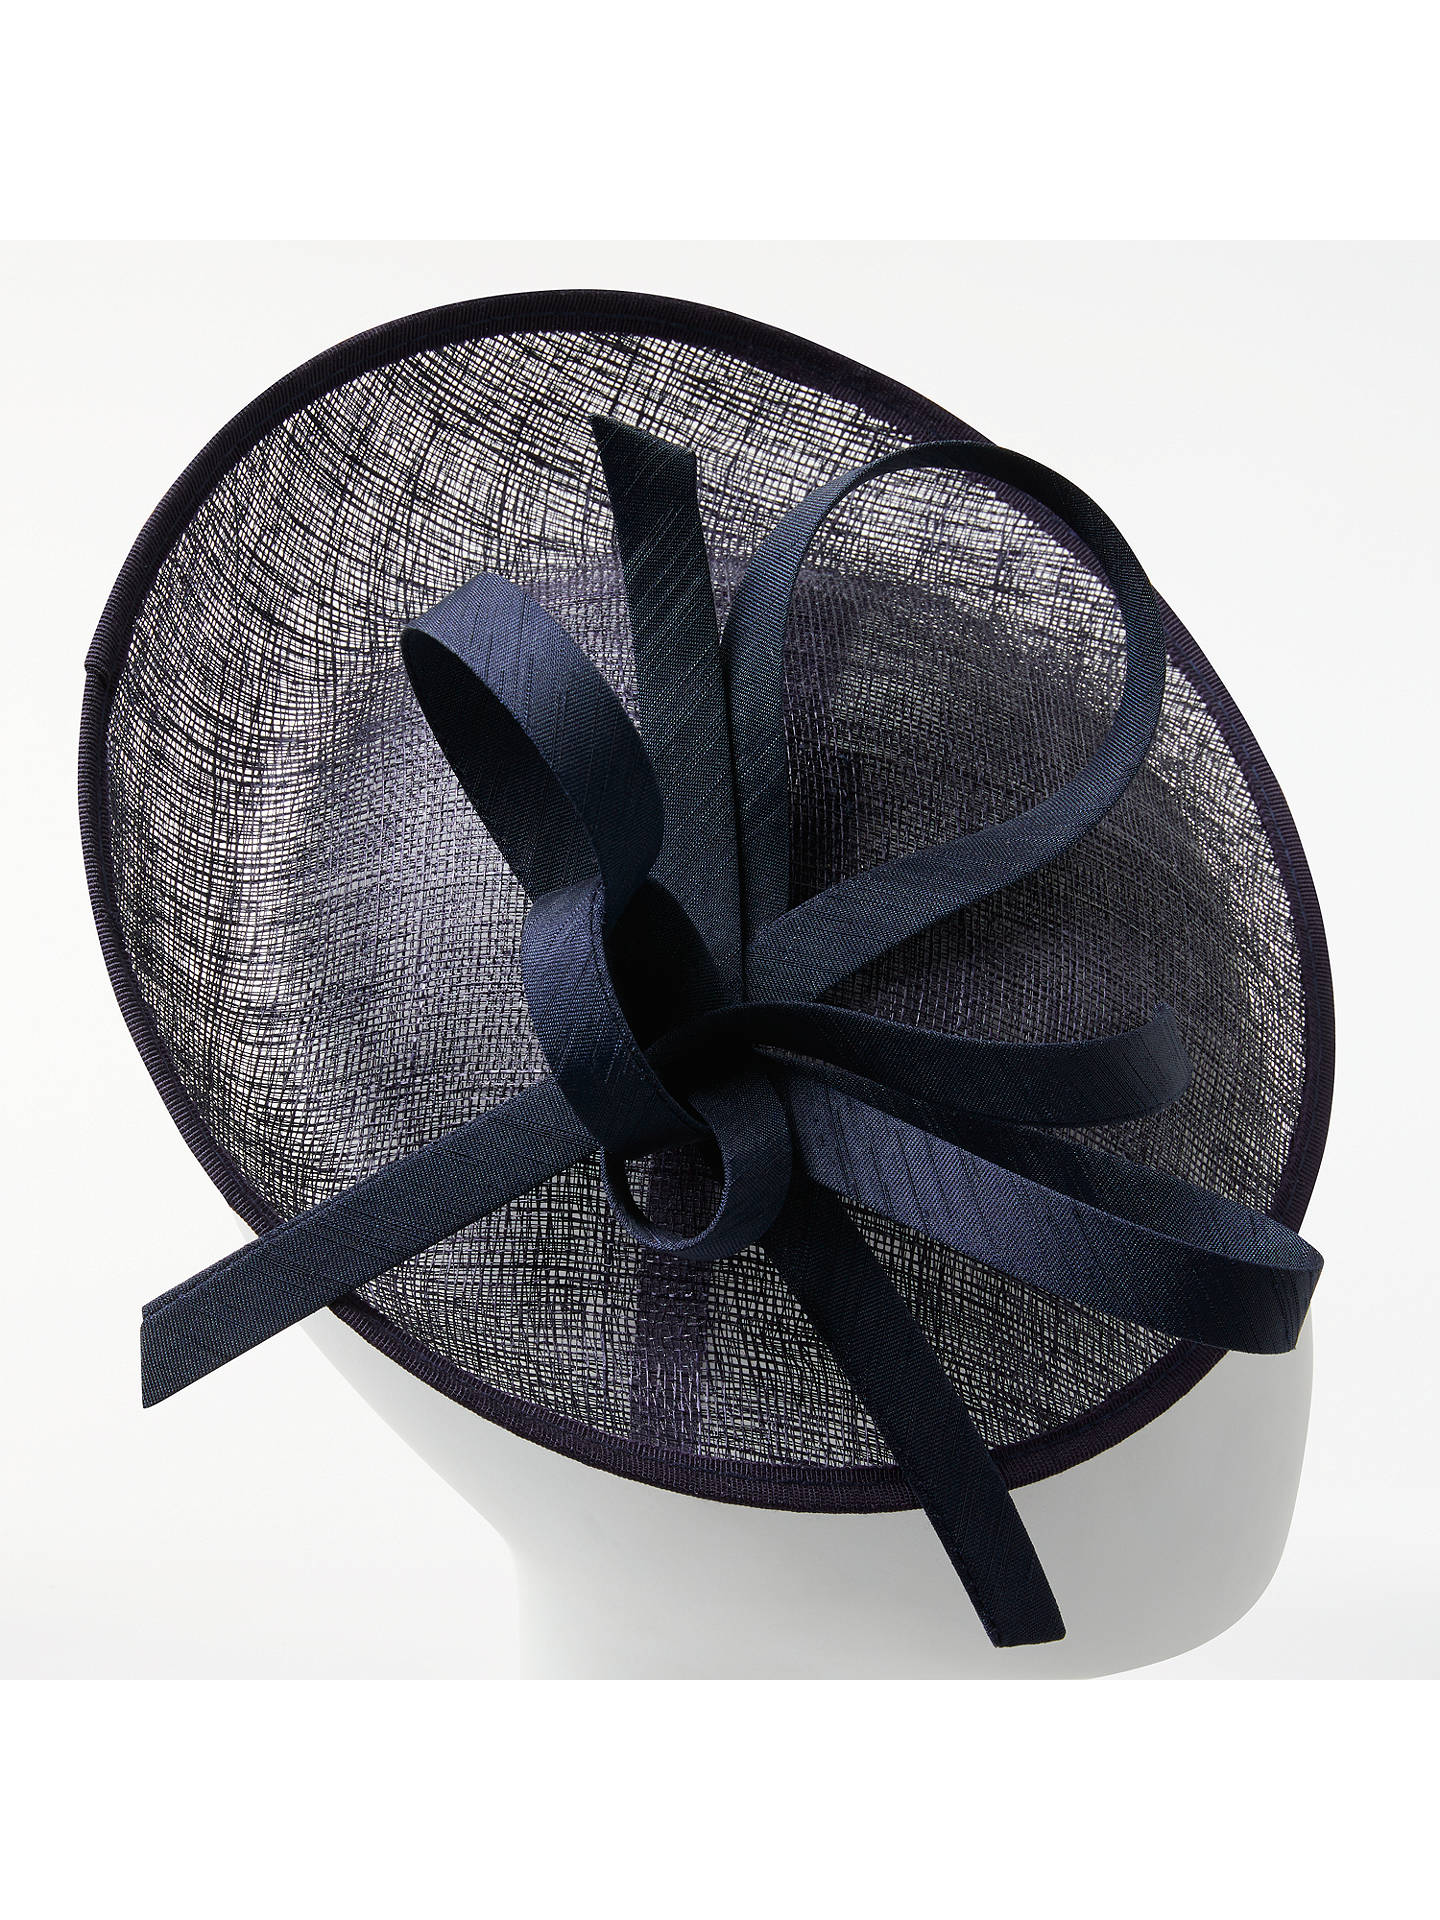 BuyJohn Lewis & Partners Bea Disc and Quill Occasion Hat, Navy Online at johnlewis.com